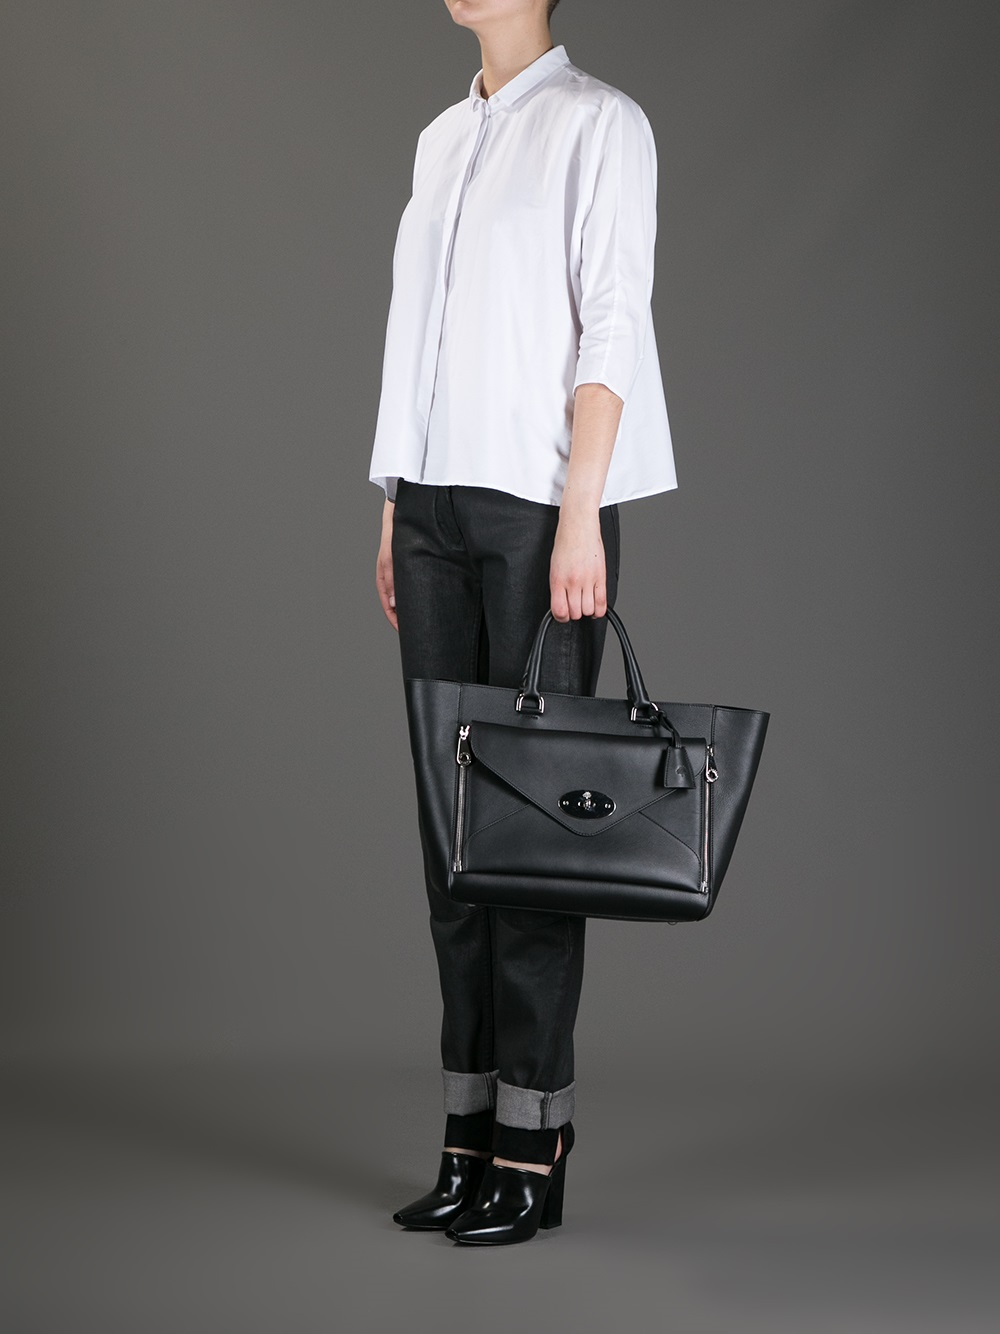 c1d7ccbcd1 Lyst - Mulberry Willow Tote Bag in Black